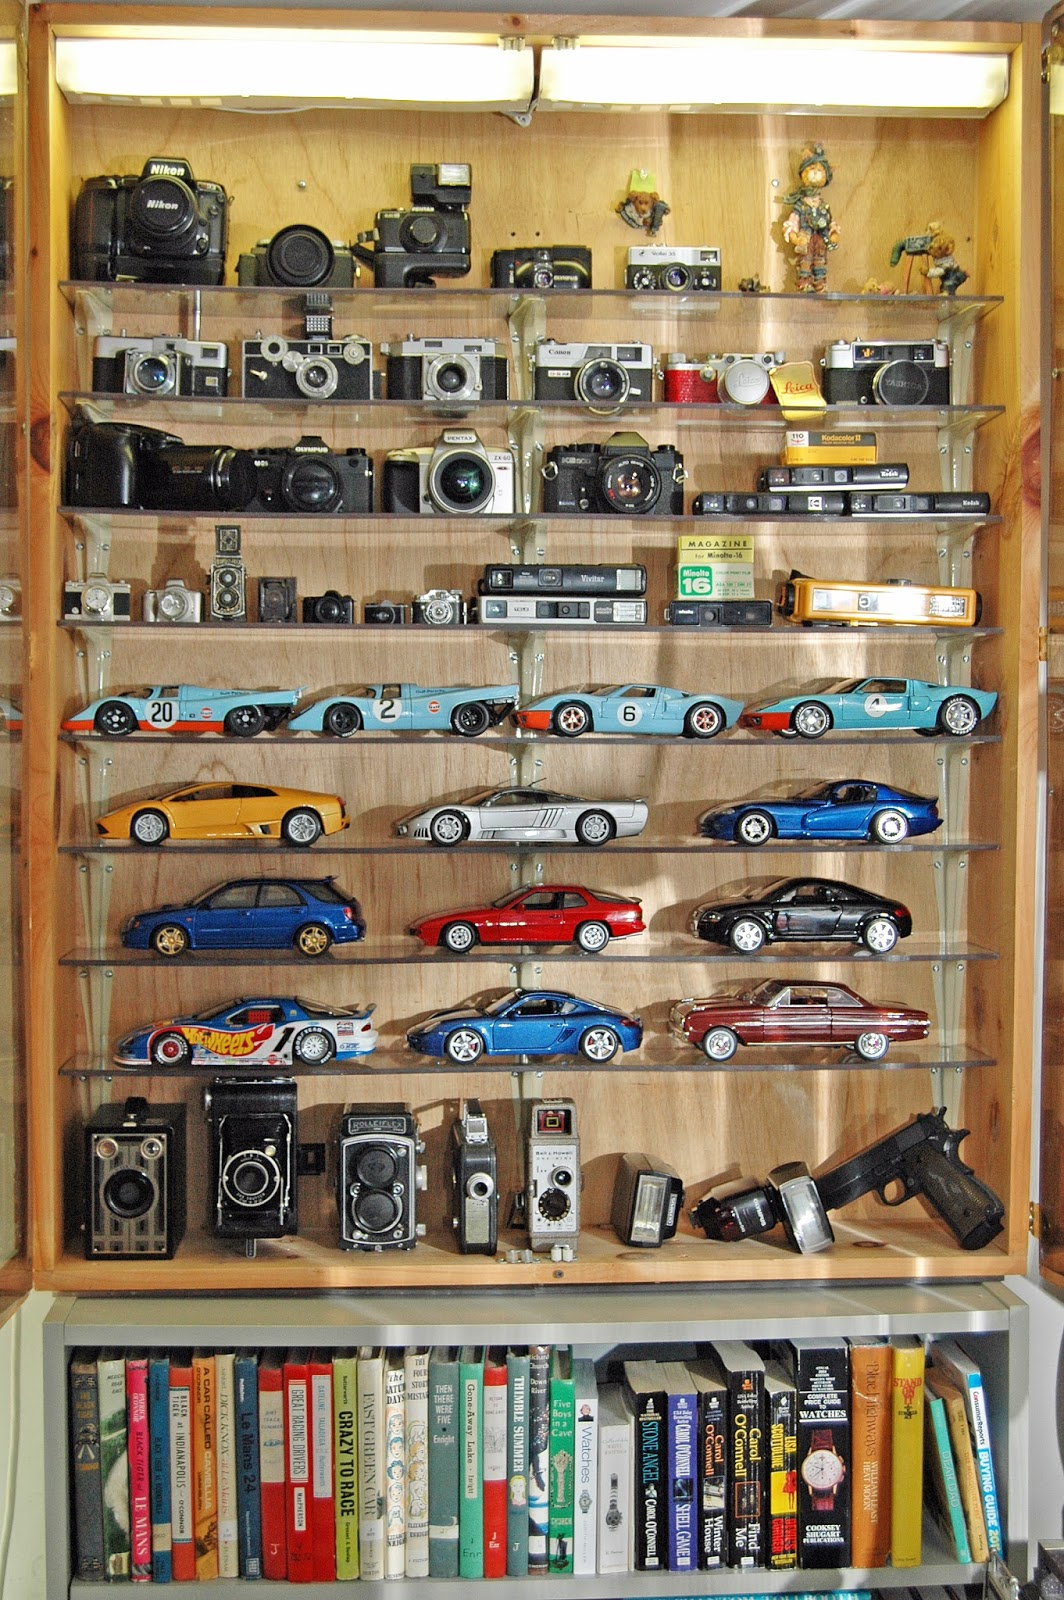 Have found a few collectible cameras, even though I don't collect ...